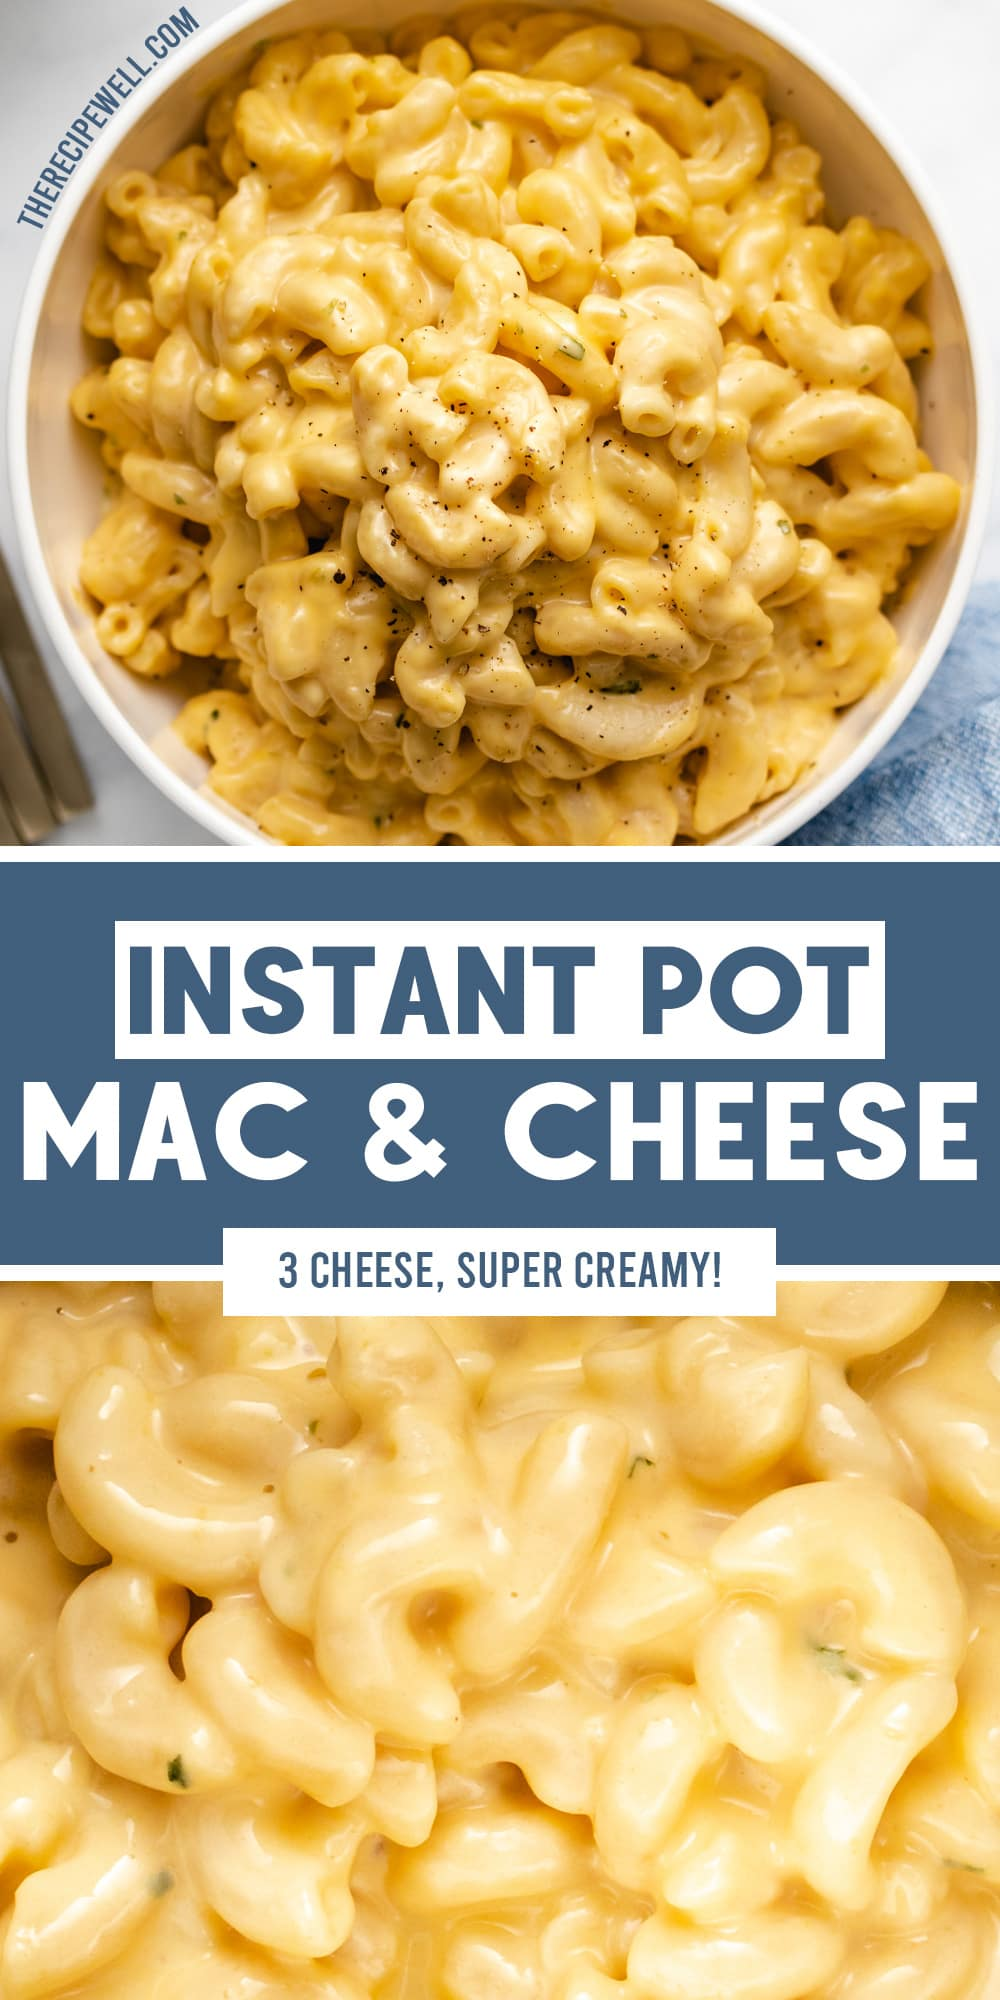 The best Instant Pot Mac and Cheese! Made with three types of cheese and simple seasonings, it's a super creamy, crowd-pleasing one-pot dish! via @therecipewell